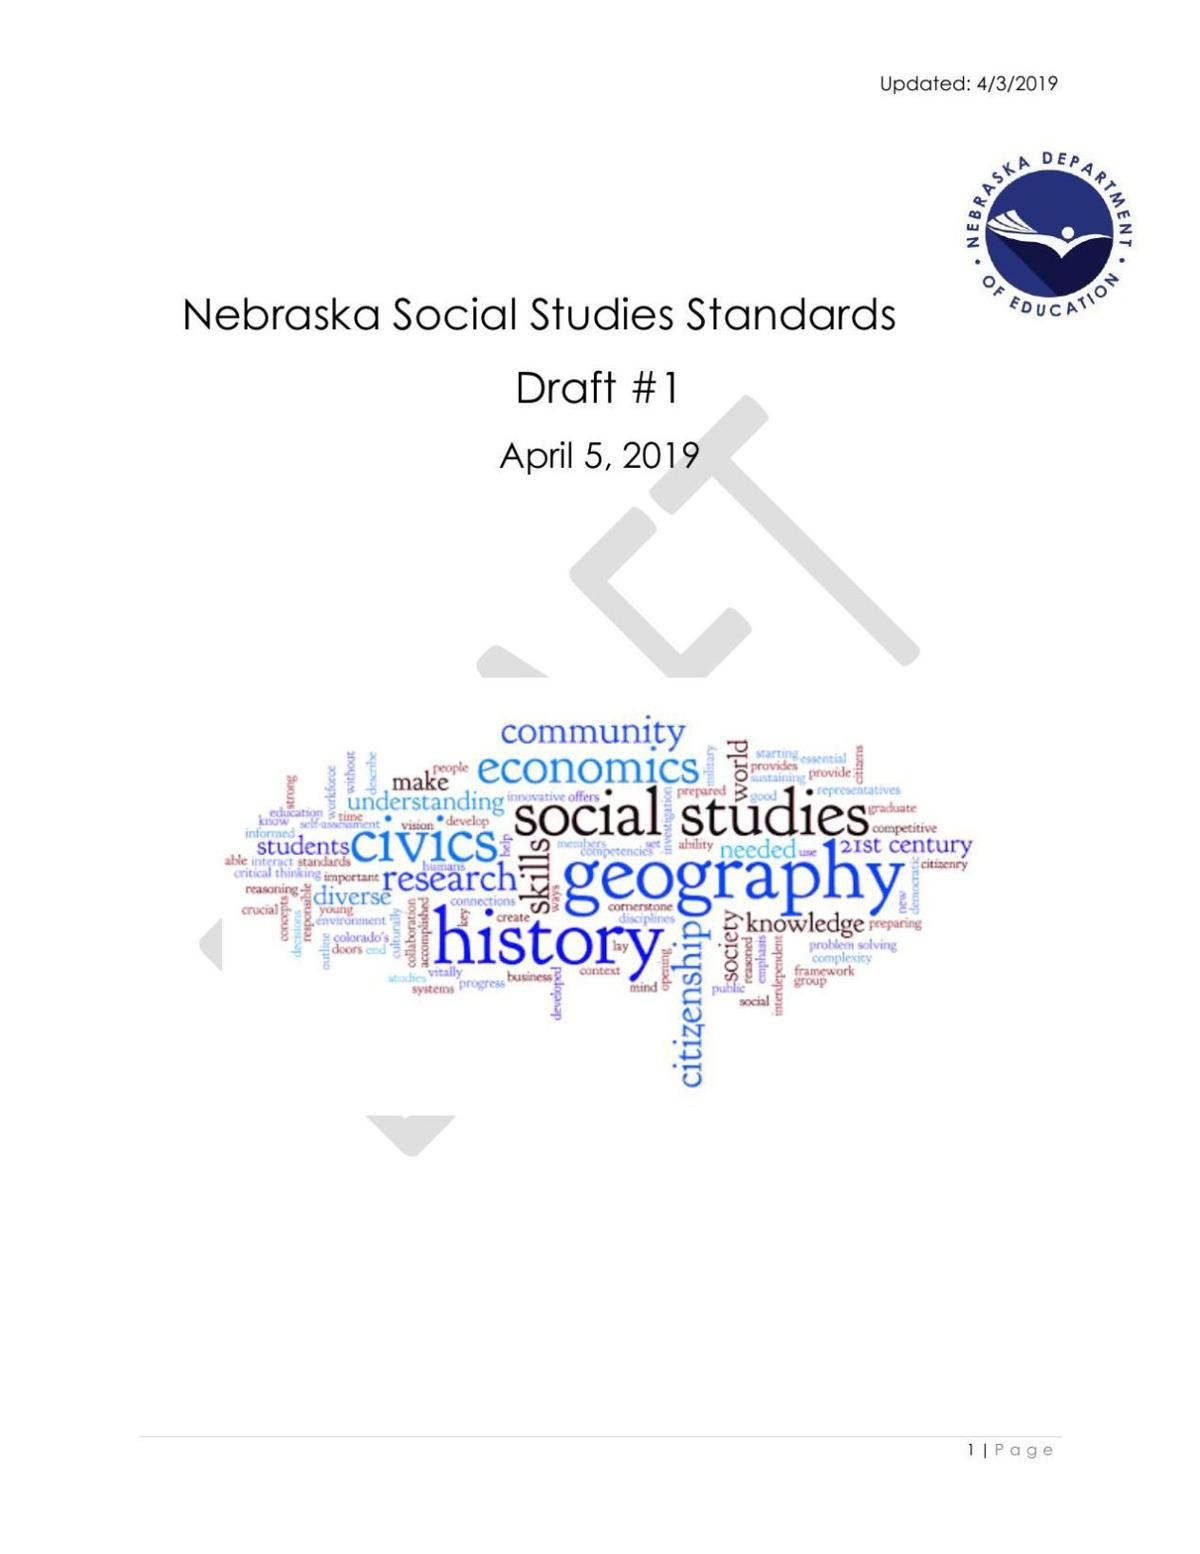 Social Studies Standards Revision (proposed draft)